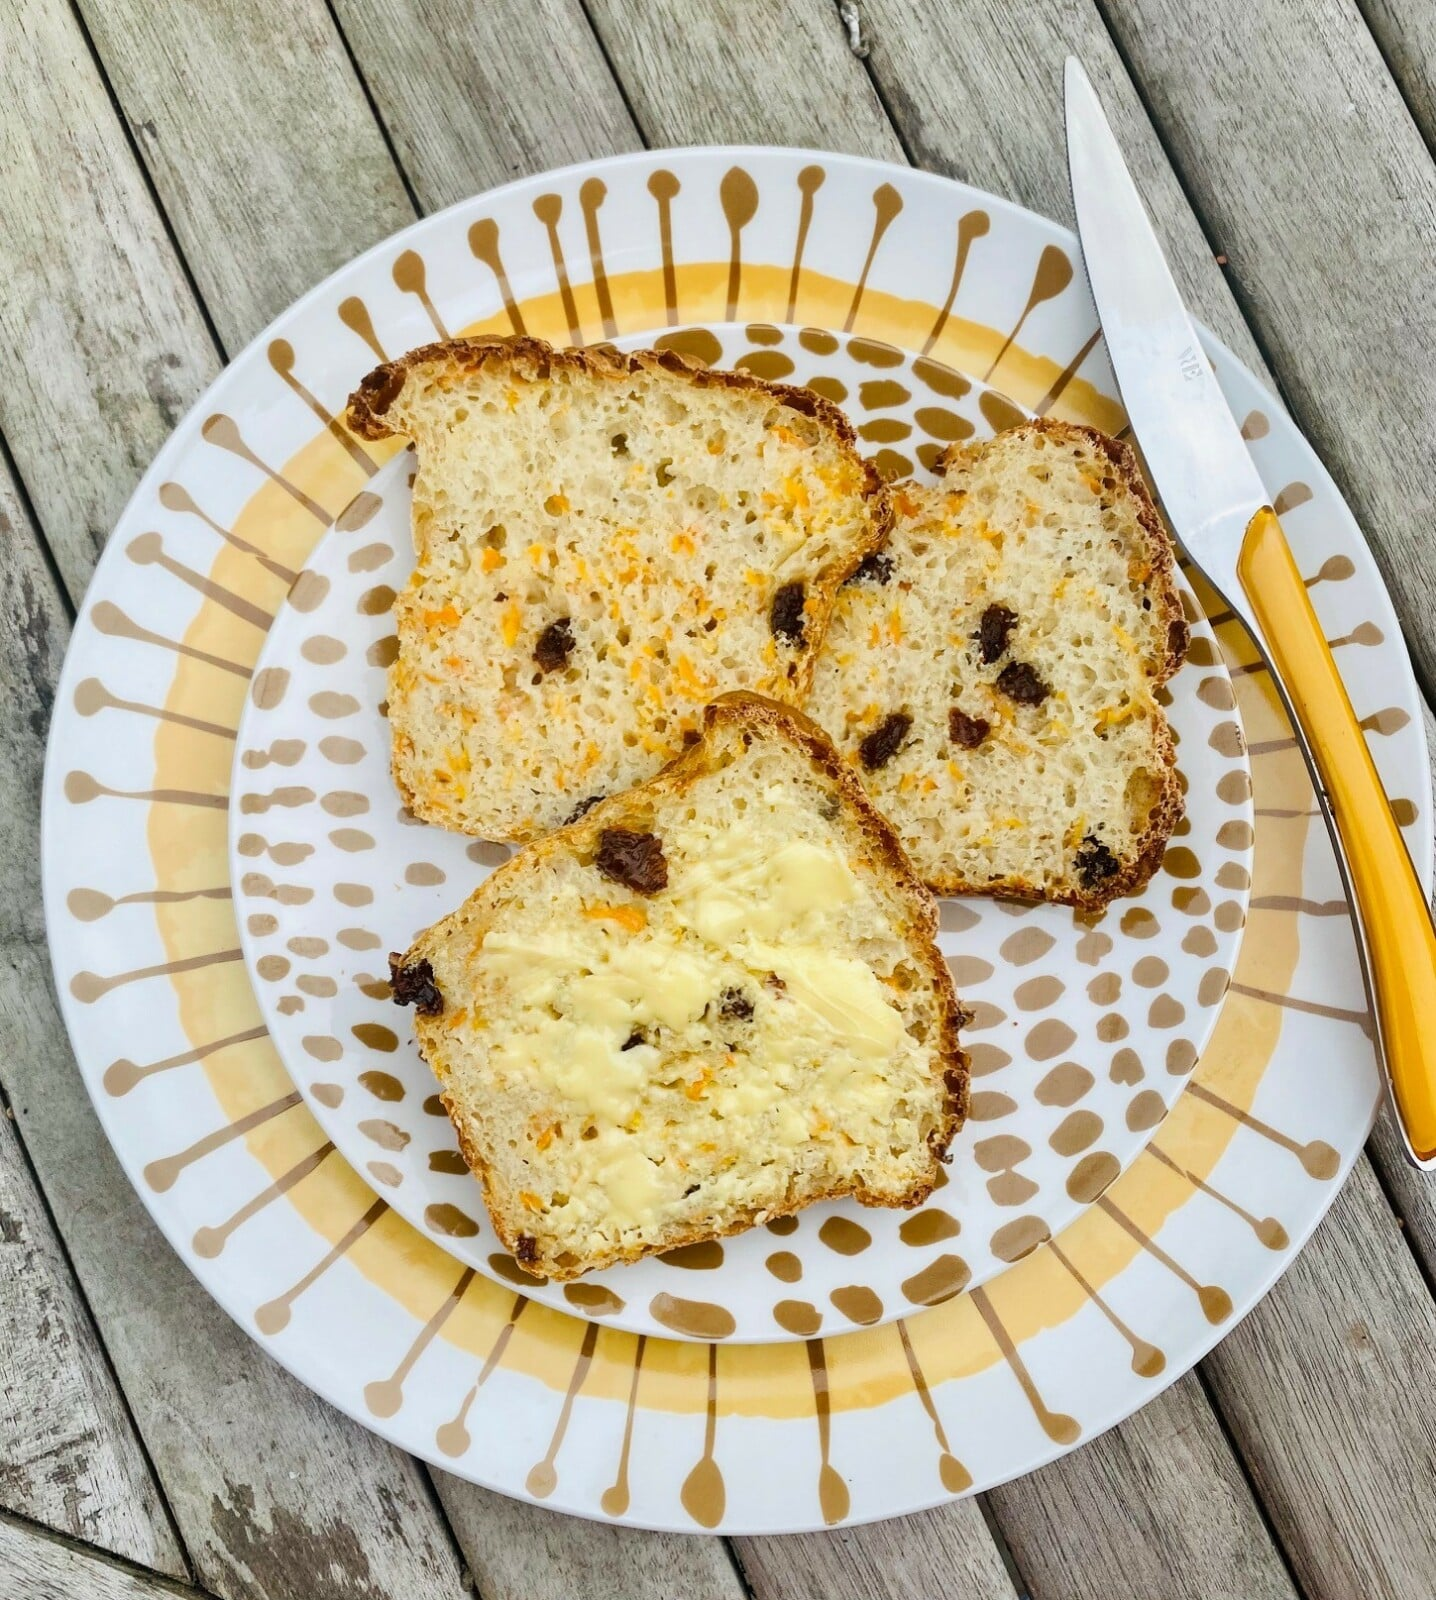 carrot and sultana loaf - slices on plate